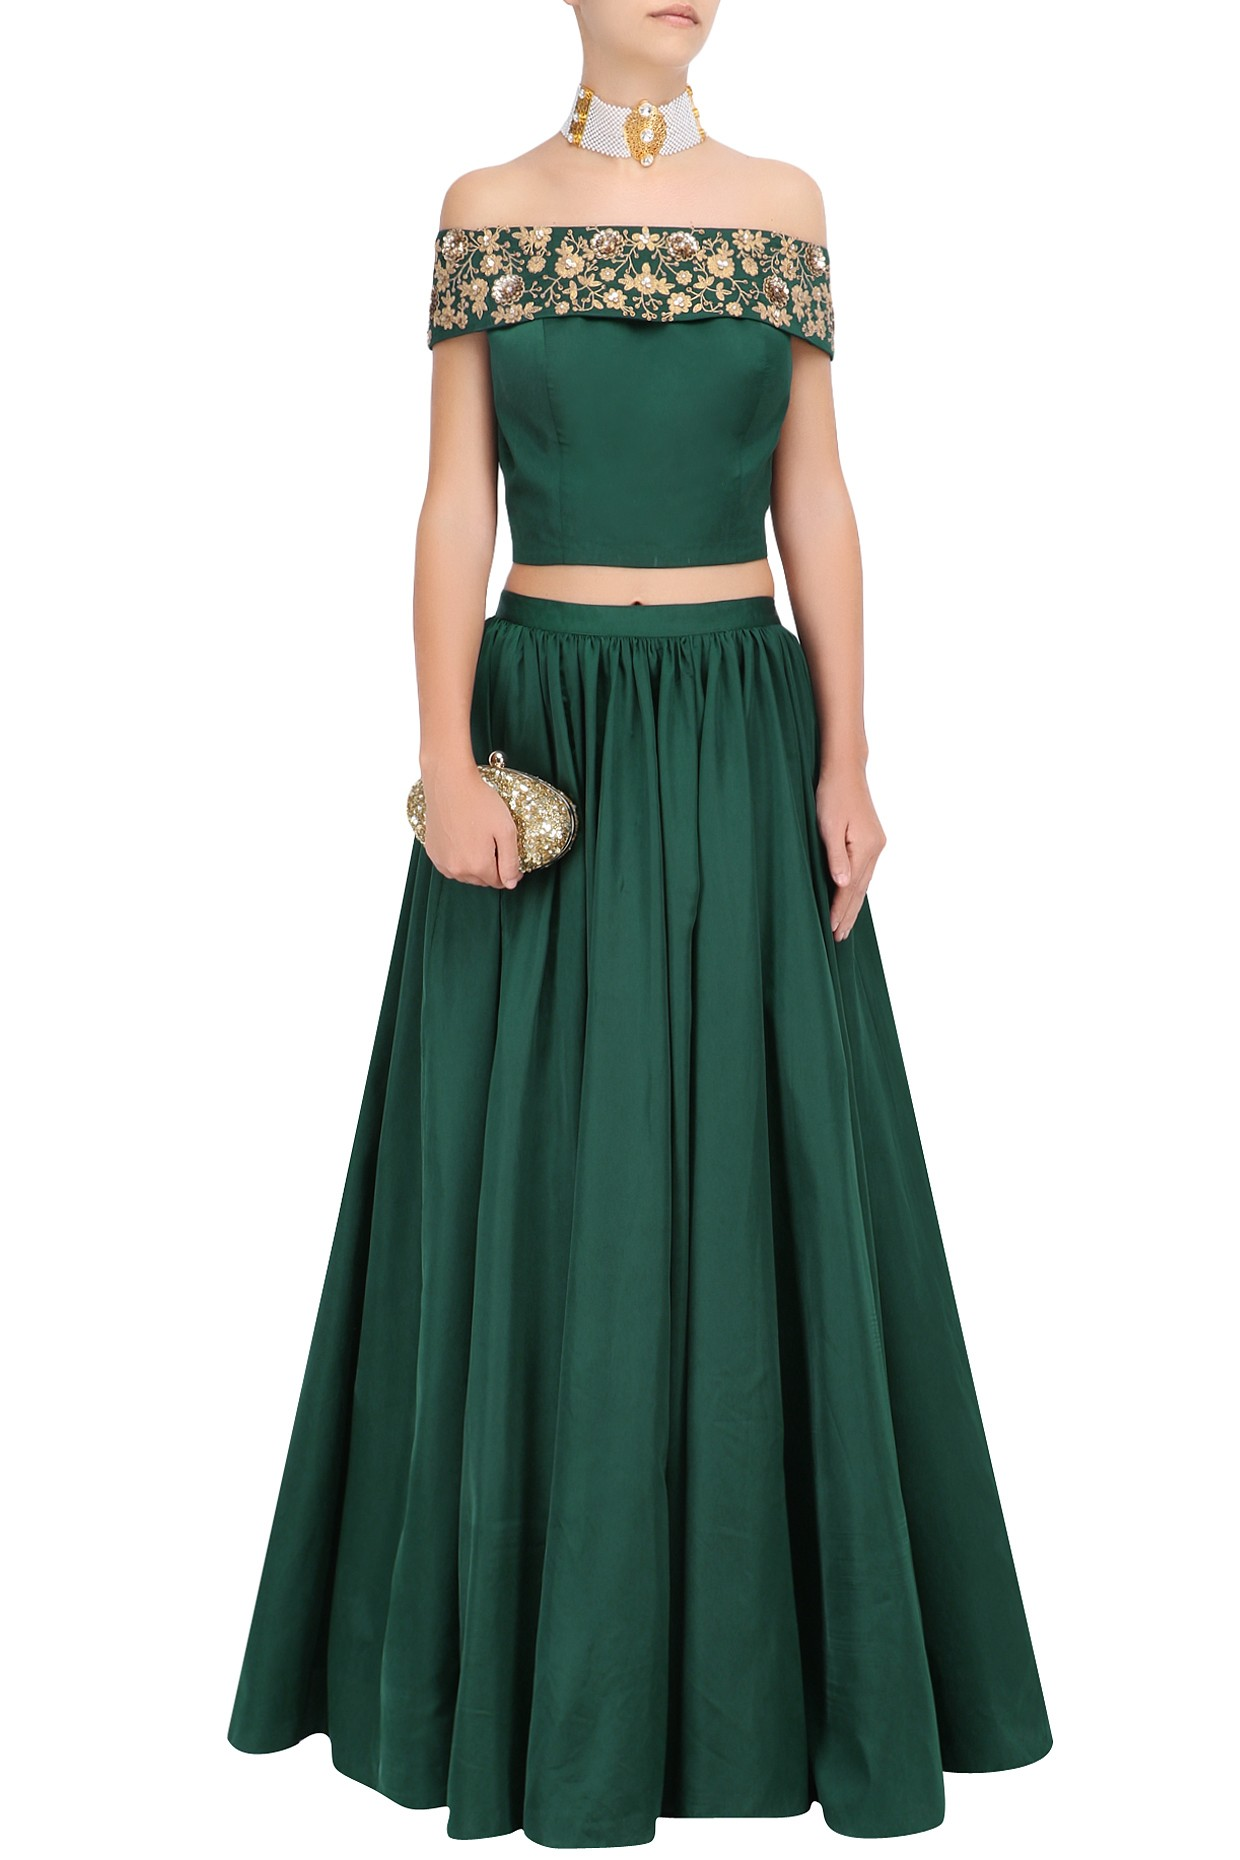 15 sangeet outfits for the bride